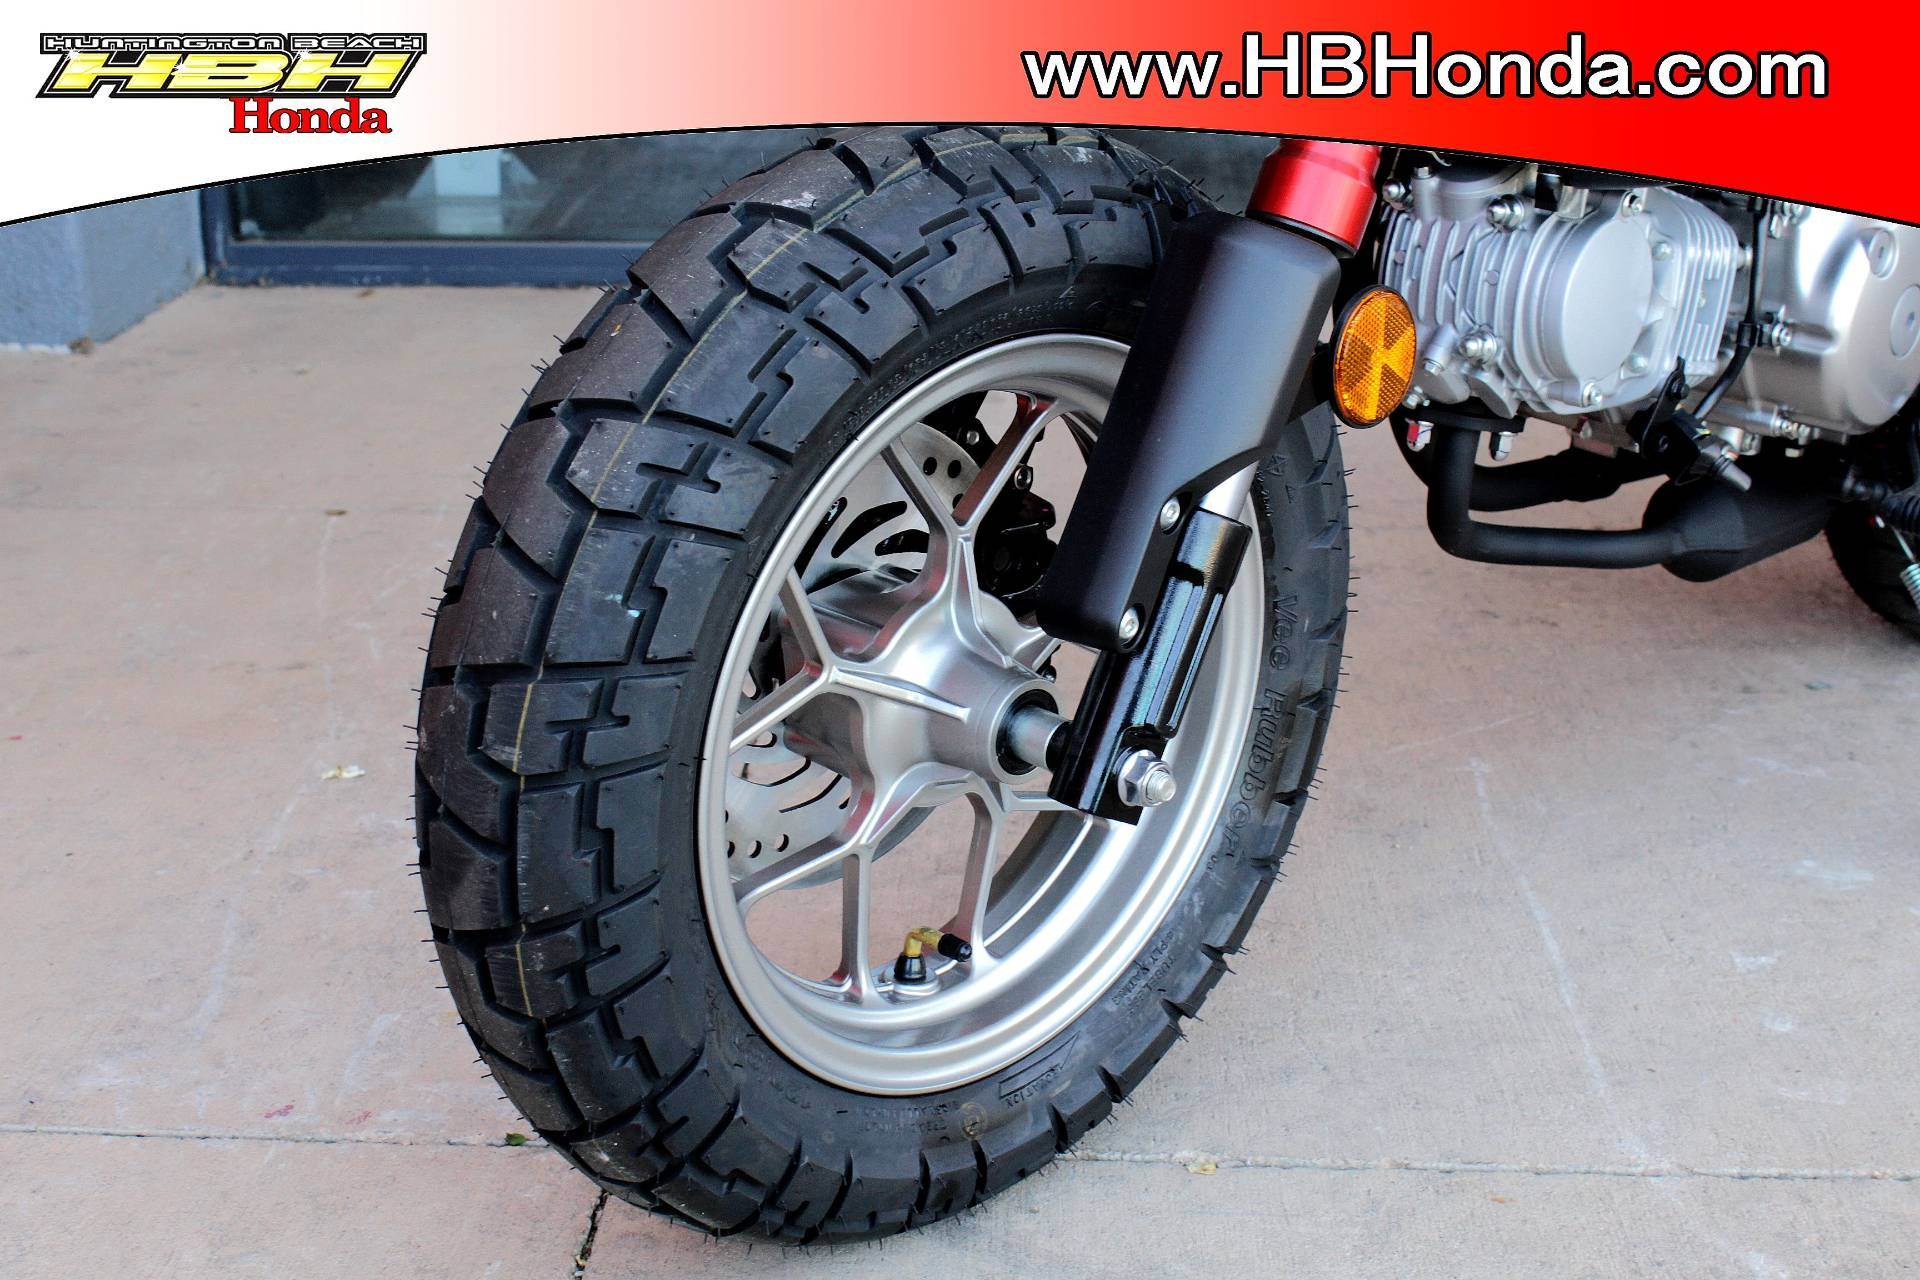 2020 Honda Monkey ABS in Huntington Beach, California - Photo 15